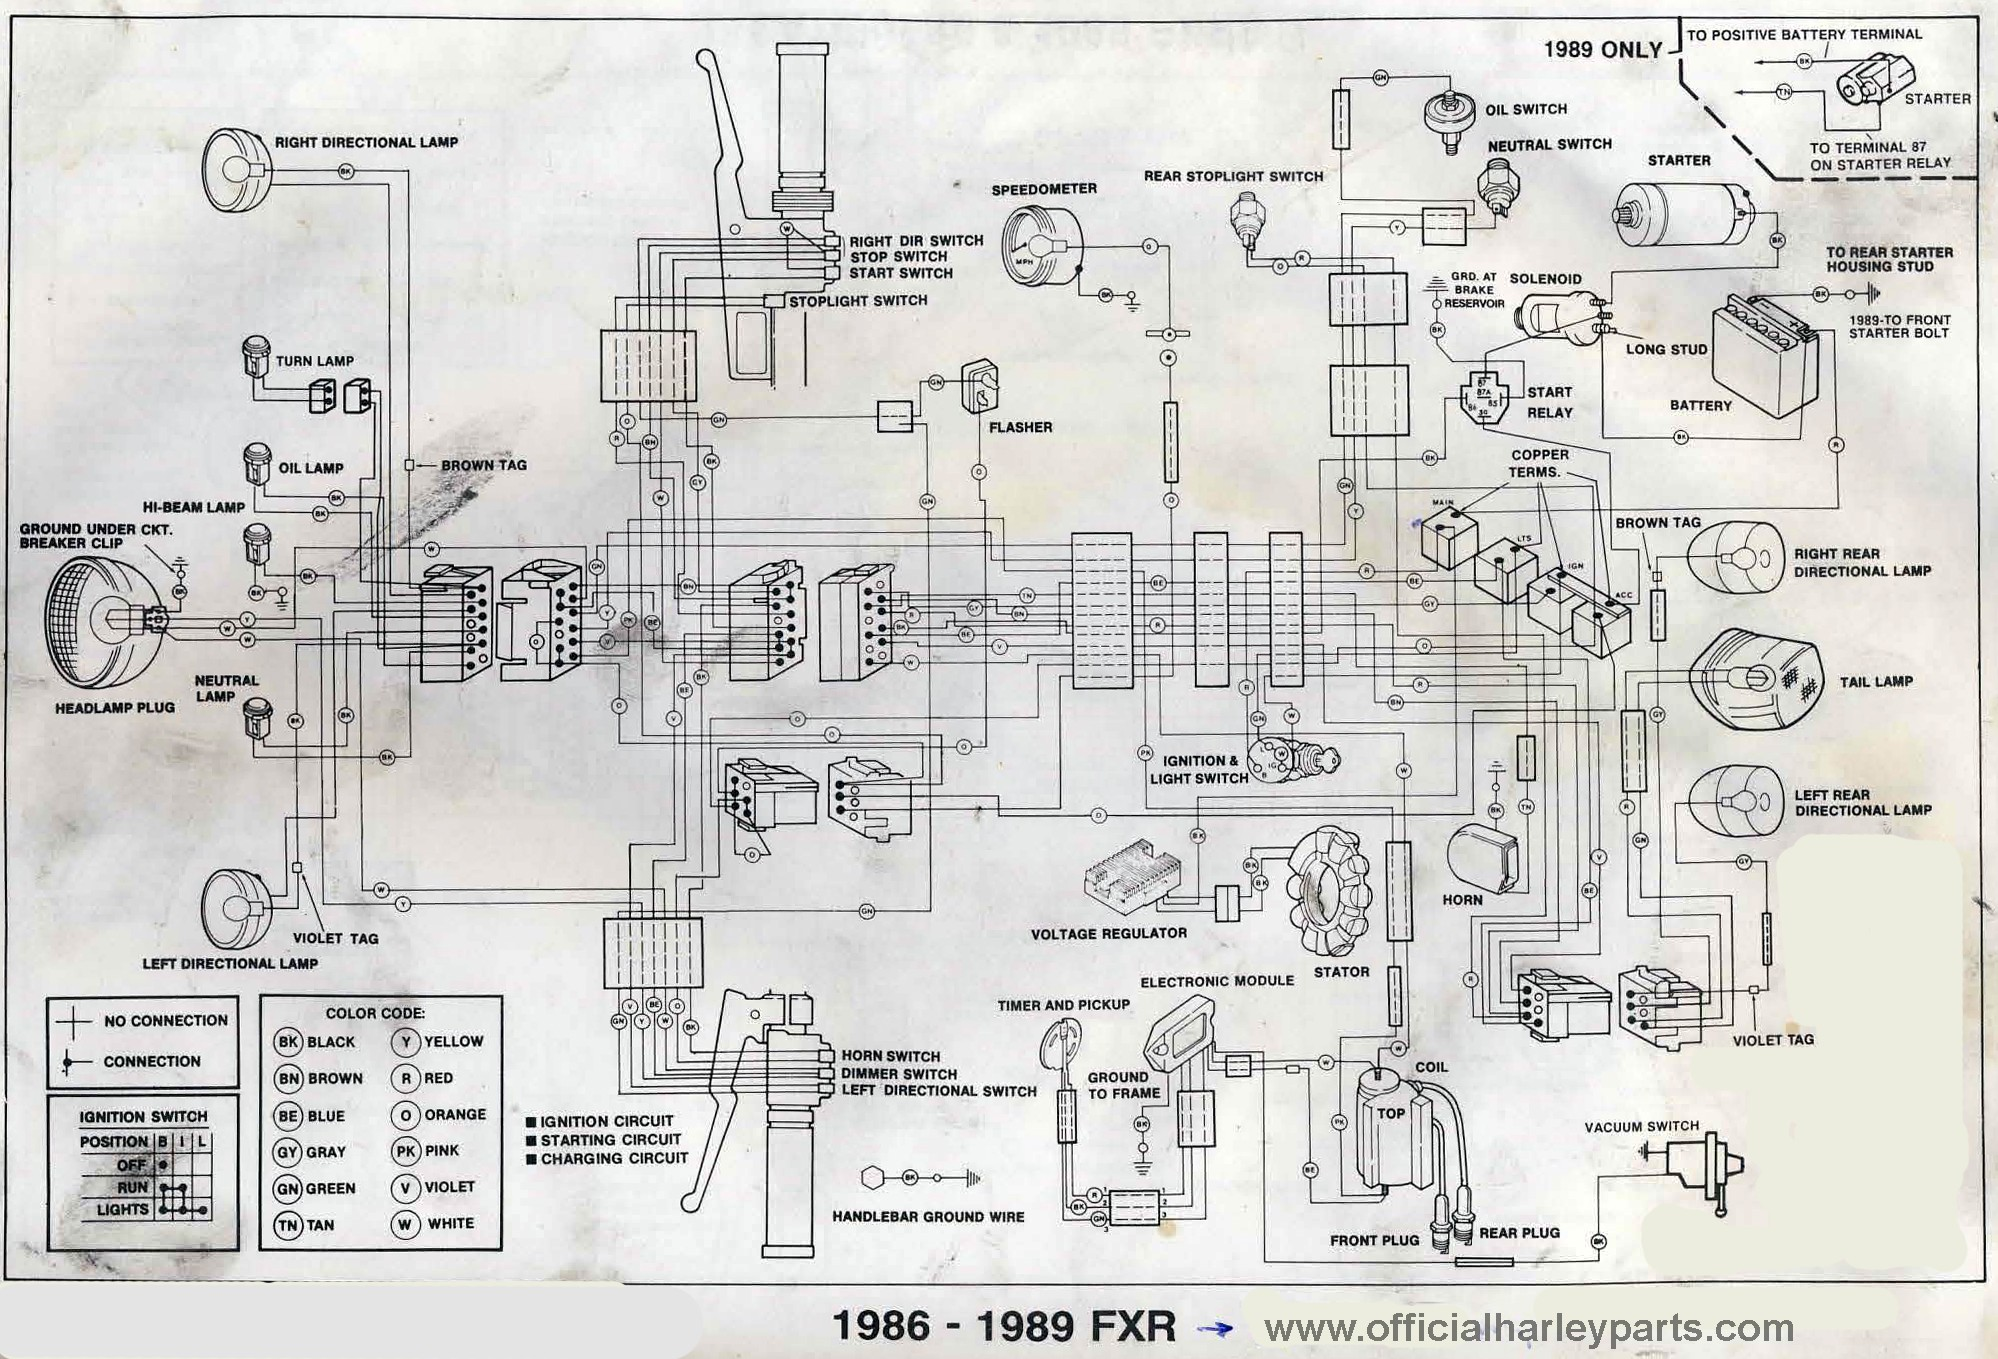 Brilliant Ideas Harley Davidson Wiring Diagrams And Schematics For 2001  Harley Sportster Wiring Diagram